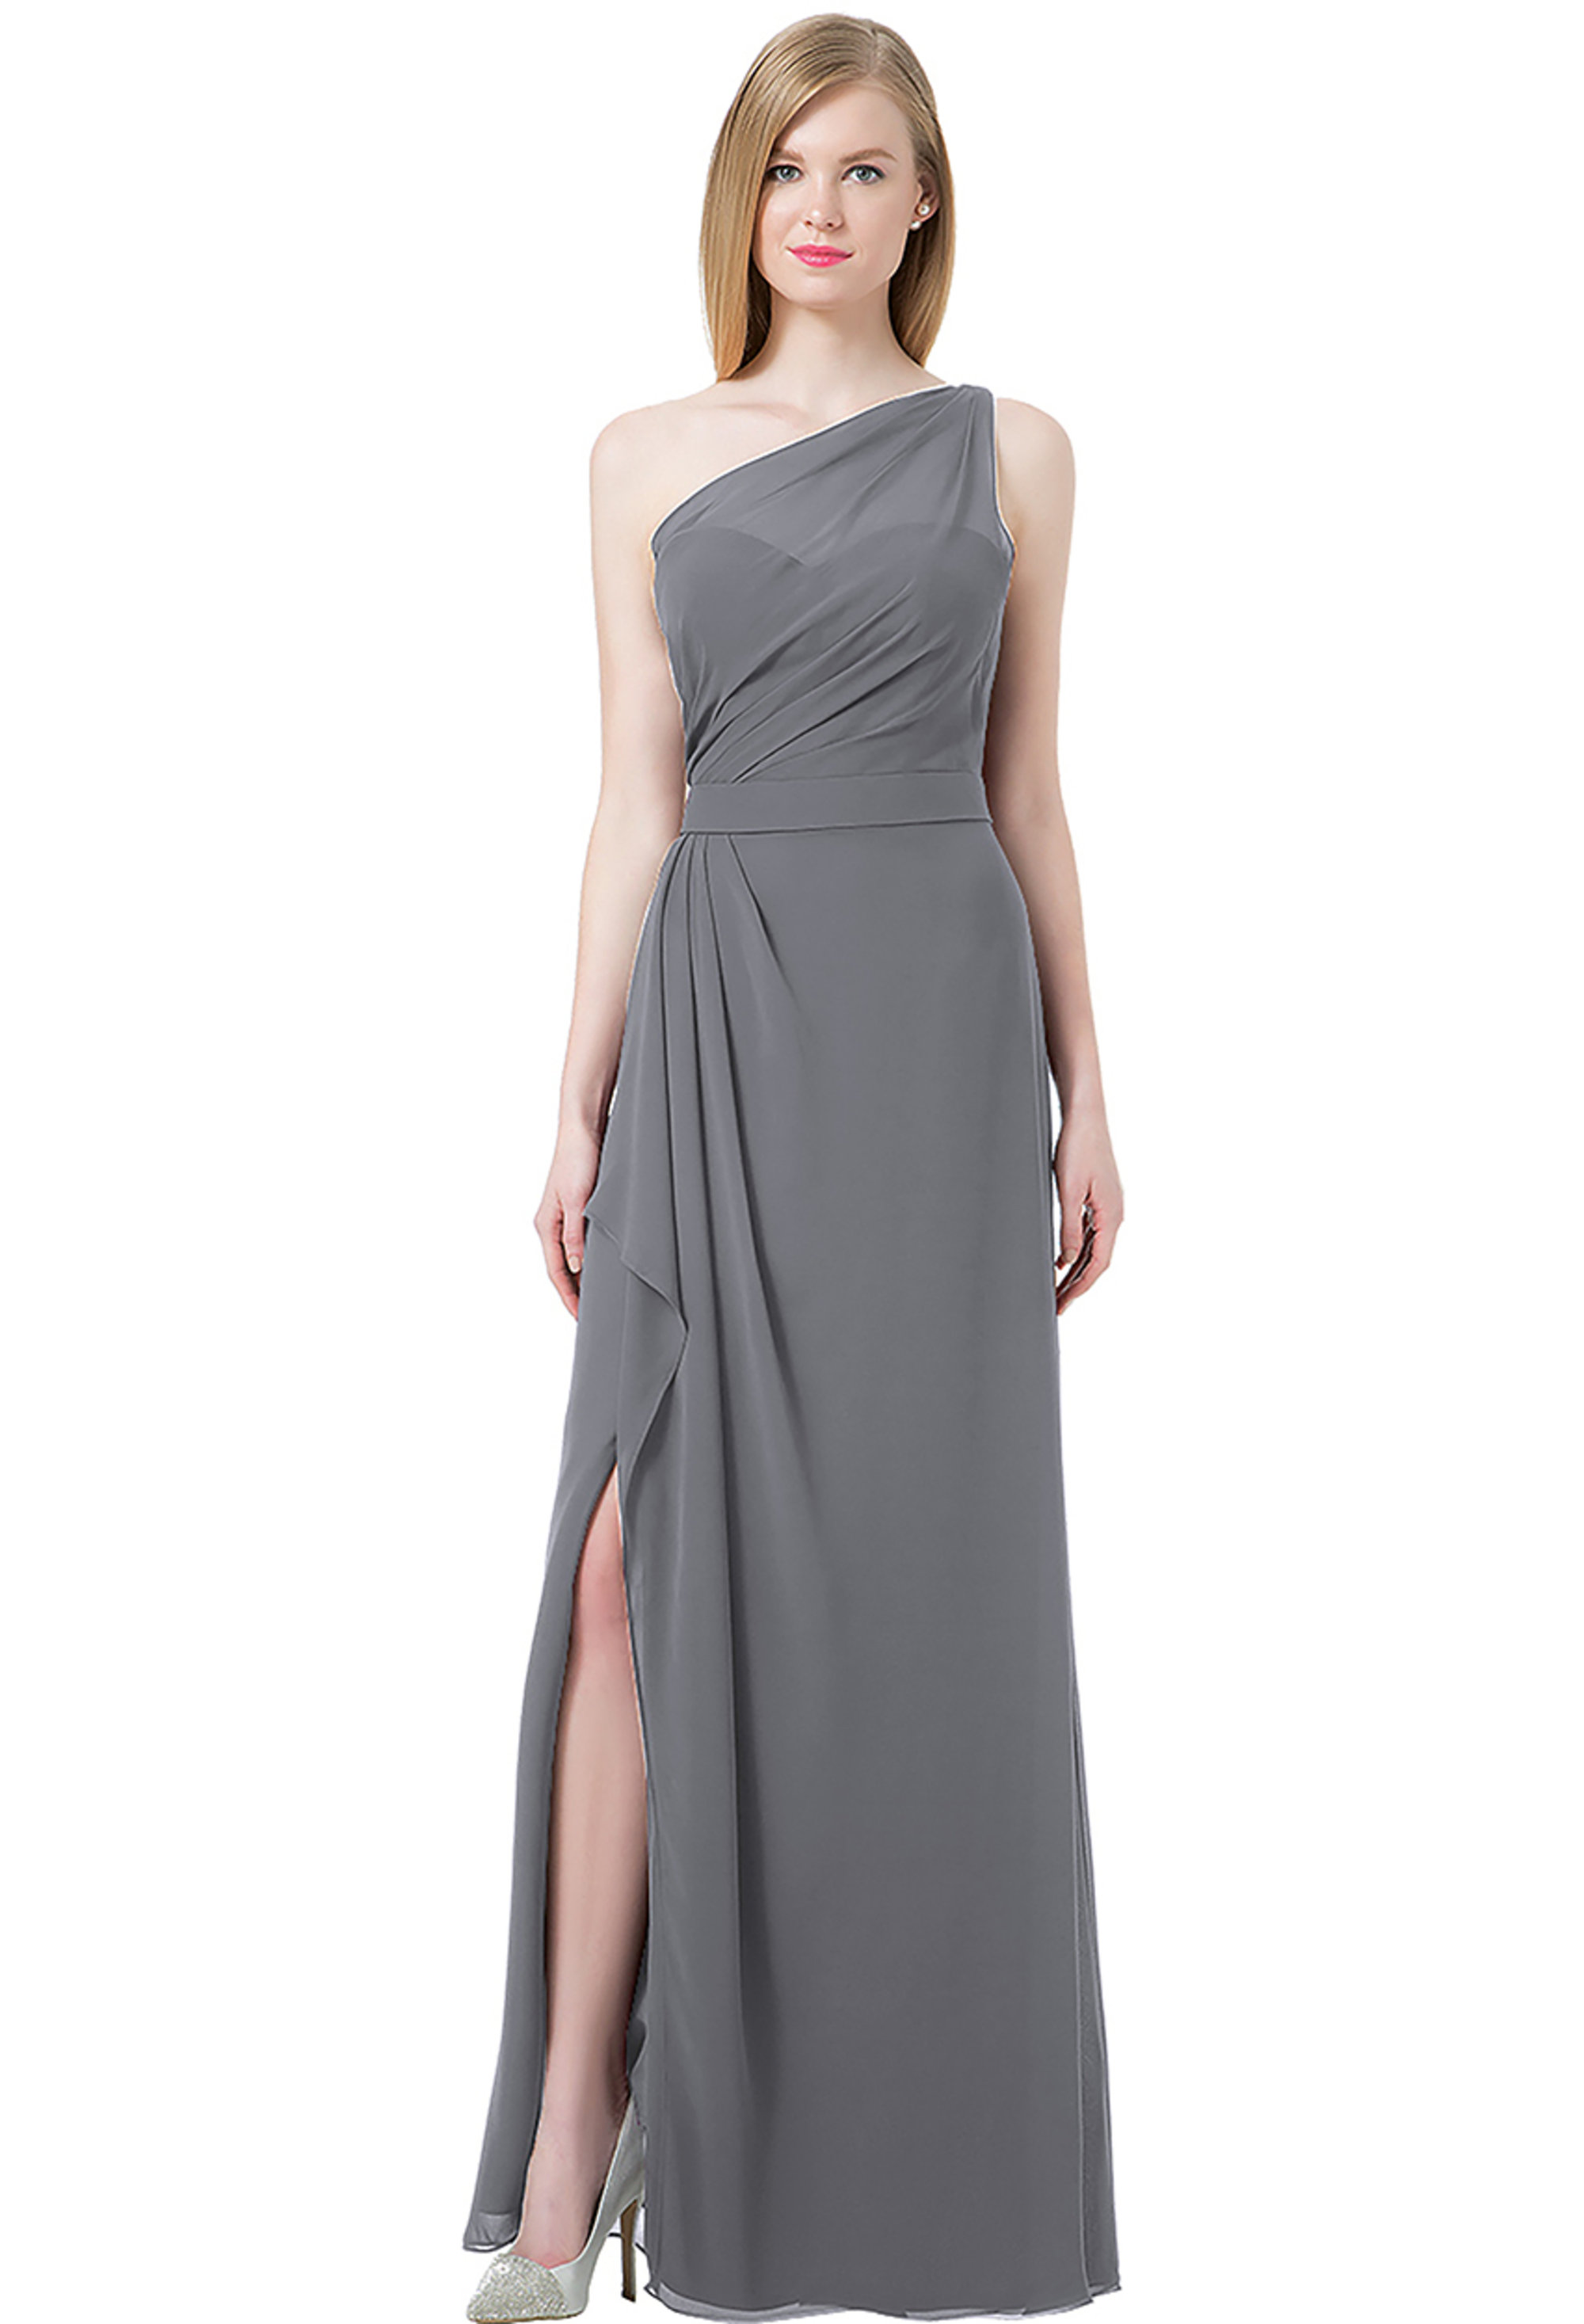 Bill Levkoff PEWTER Chiffon Double Back Spaghetti Strap Side Slit gown, $220.00 Front